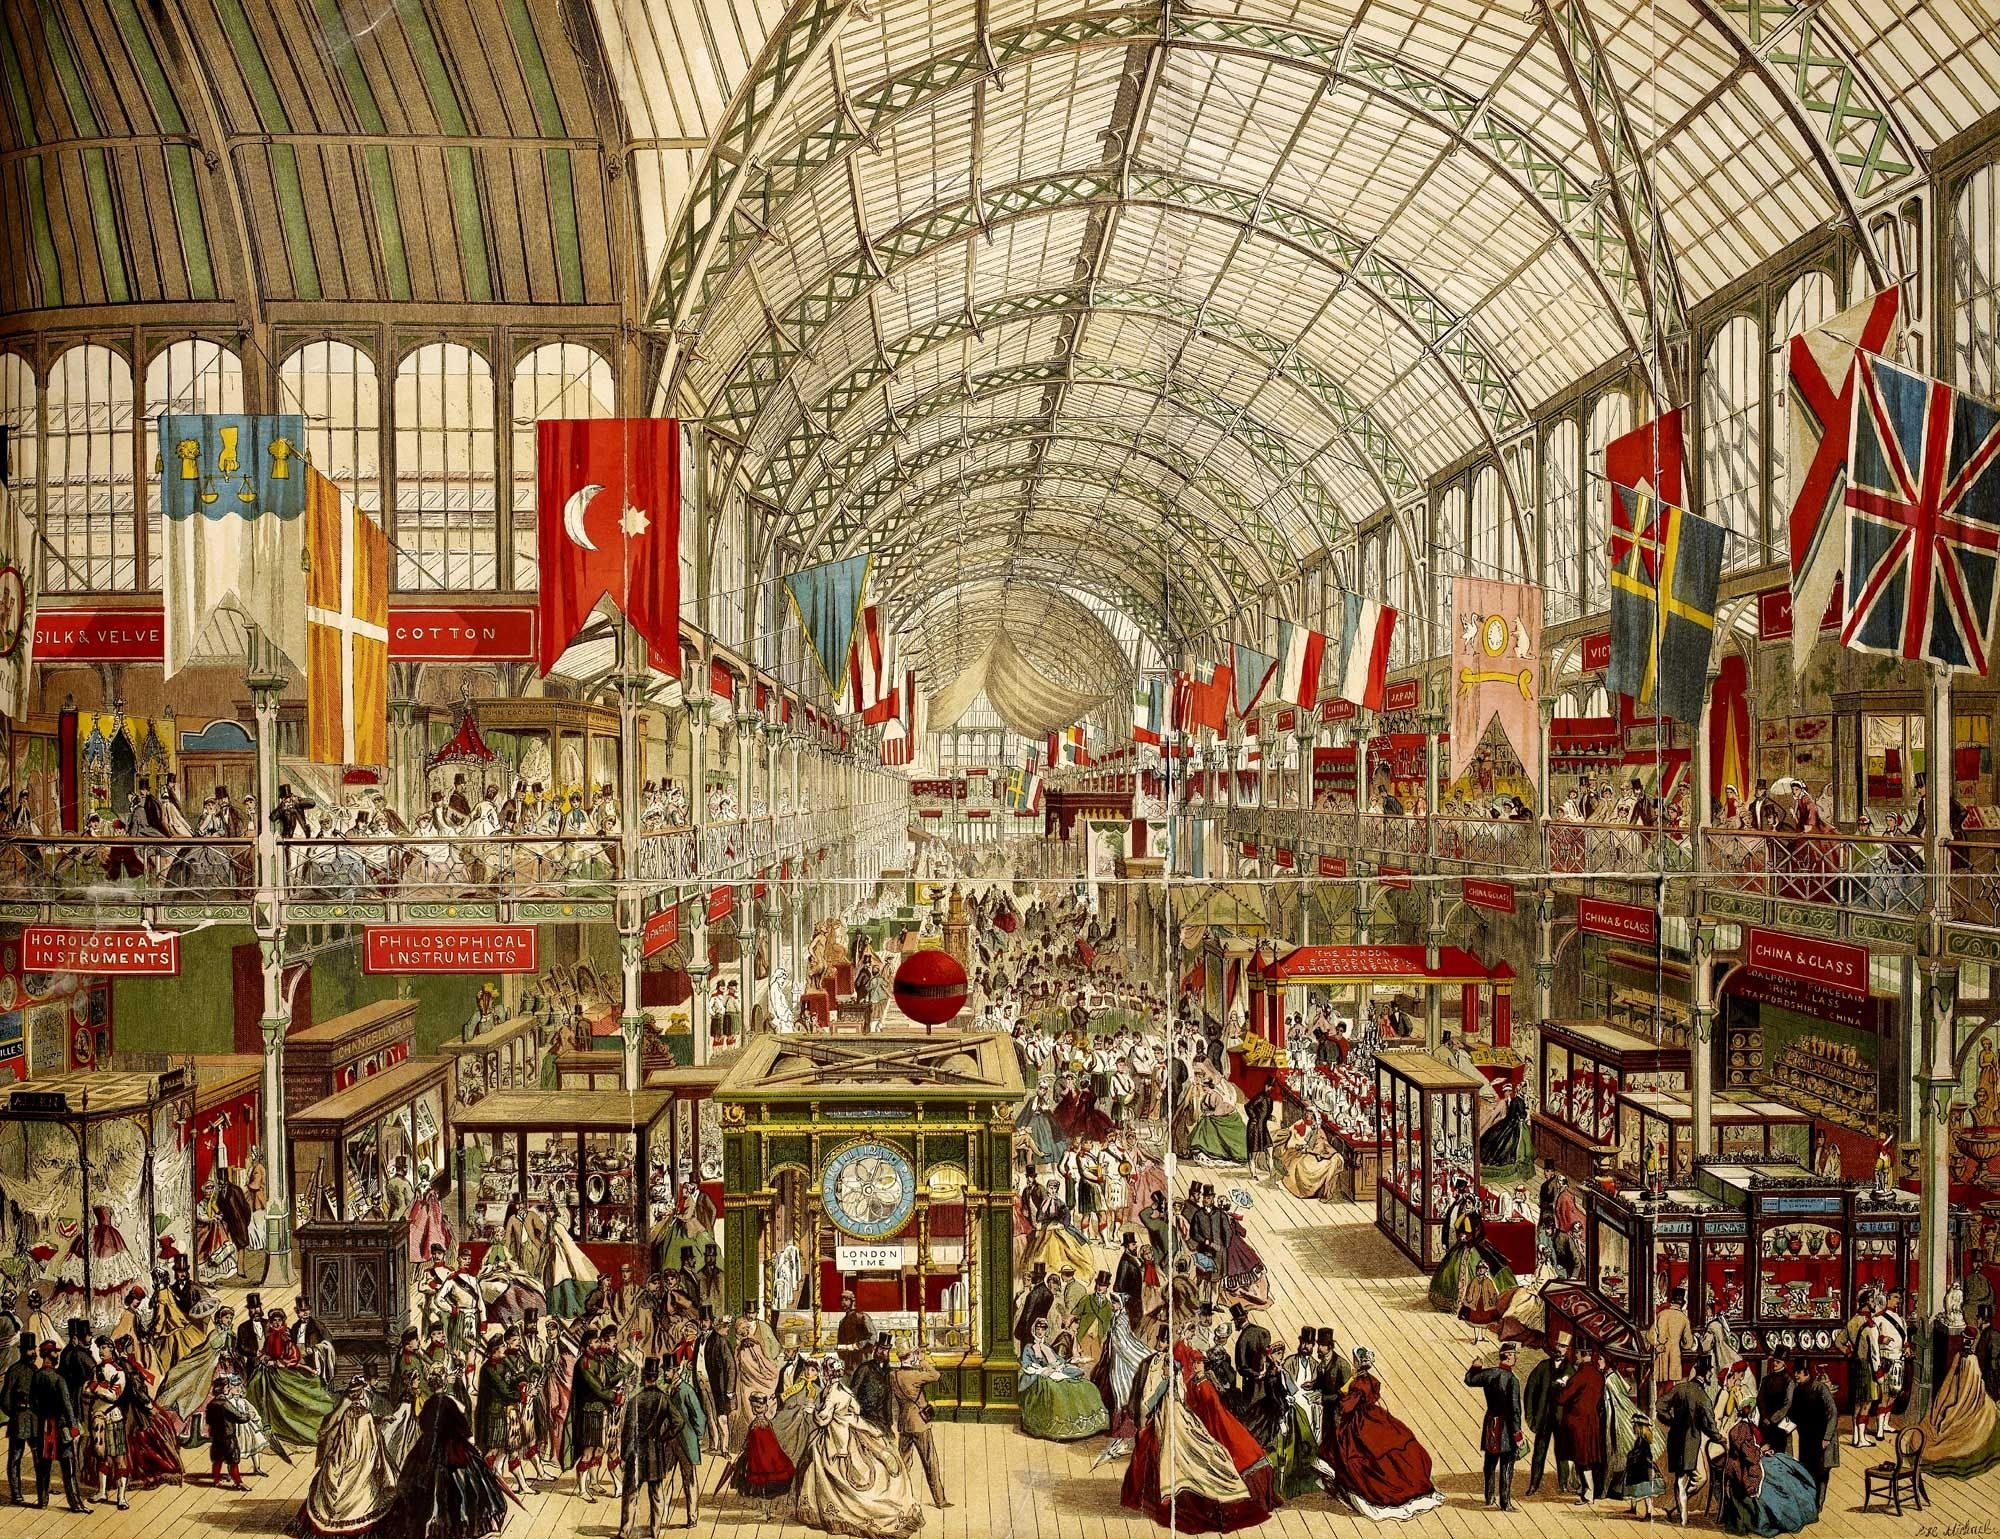 Joseph Paxton - Crystal Palace, The Great Exhibition. London, 1851.